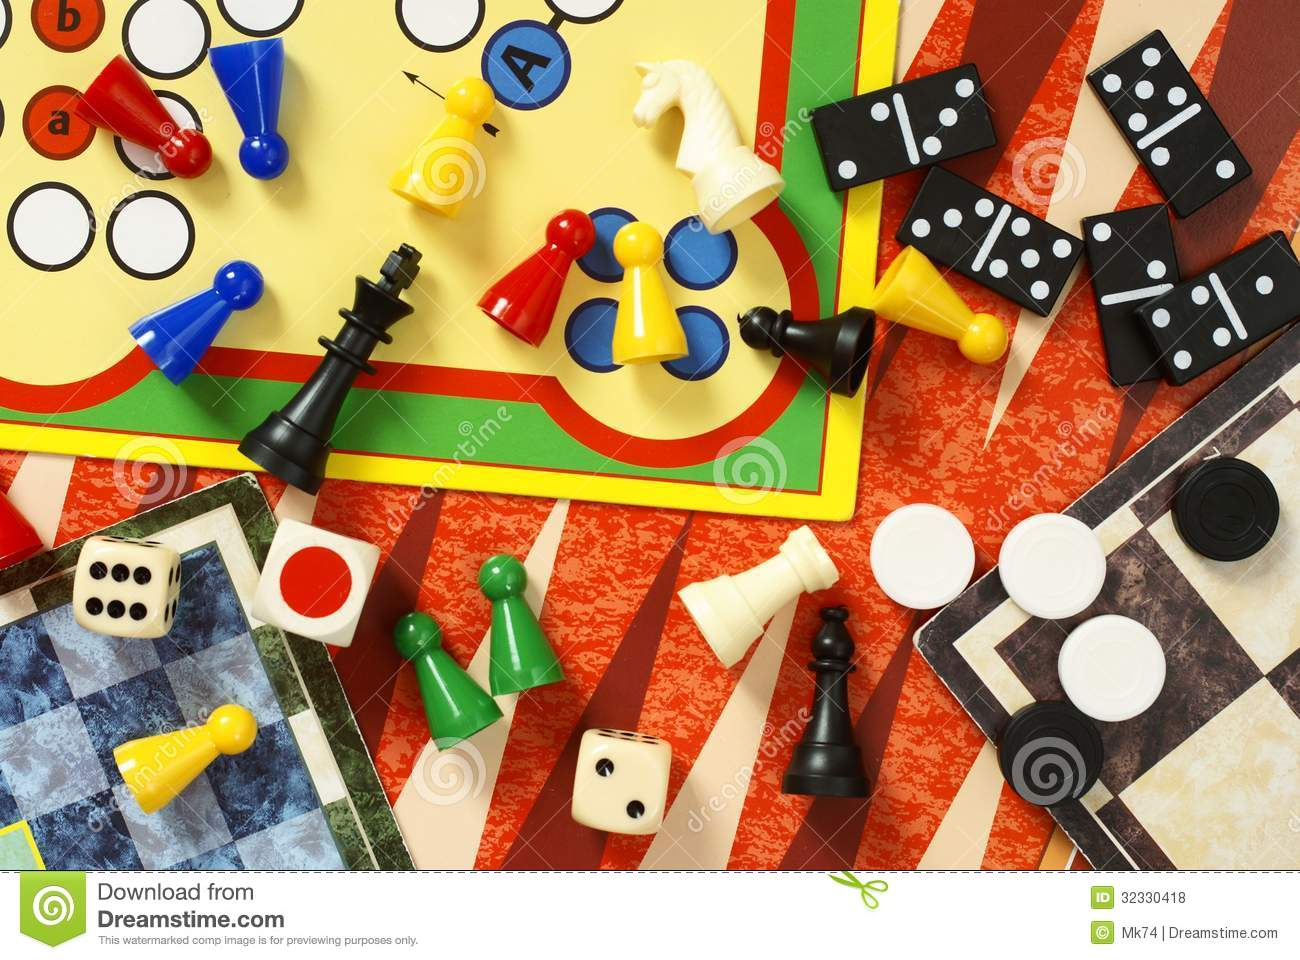 Board Games Royalty Free Stock Photos - Image: 32330418